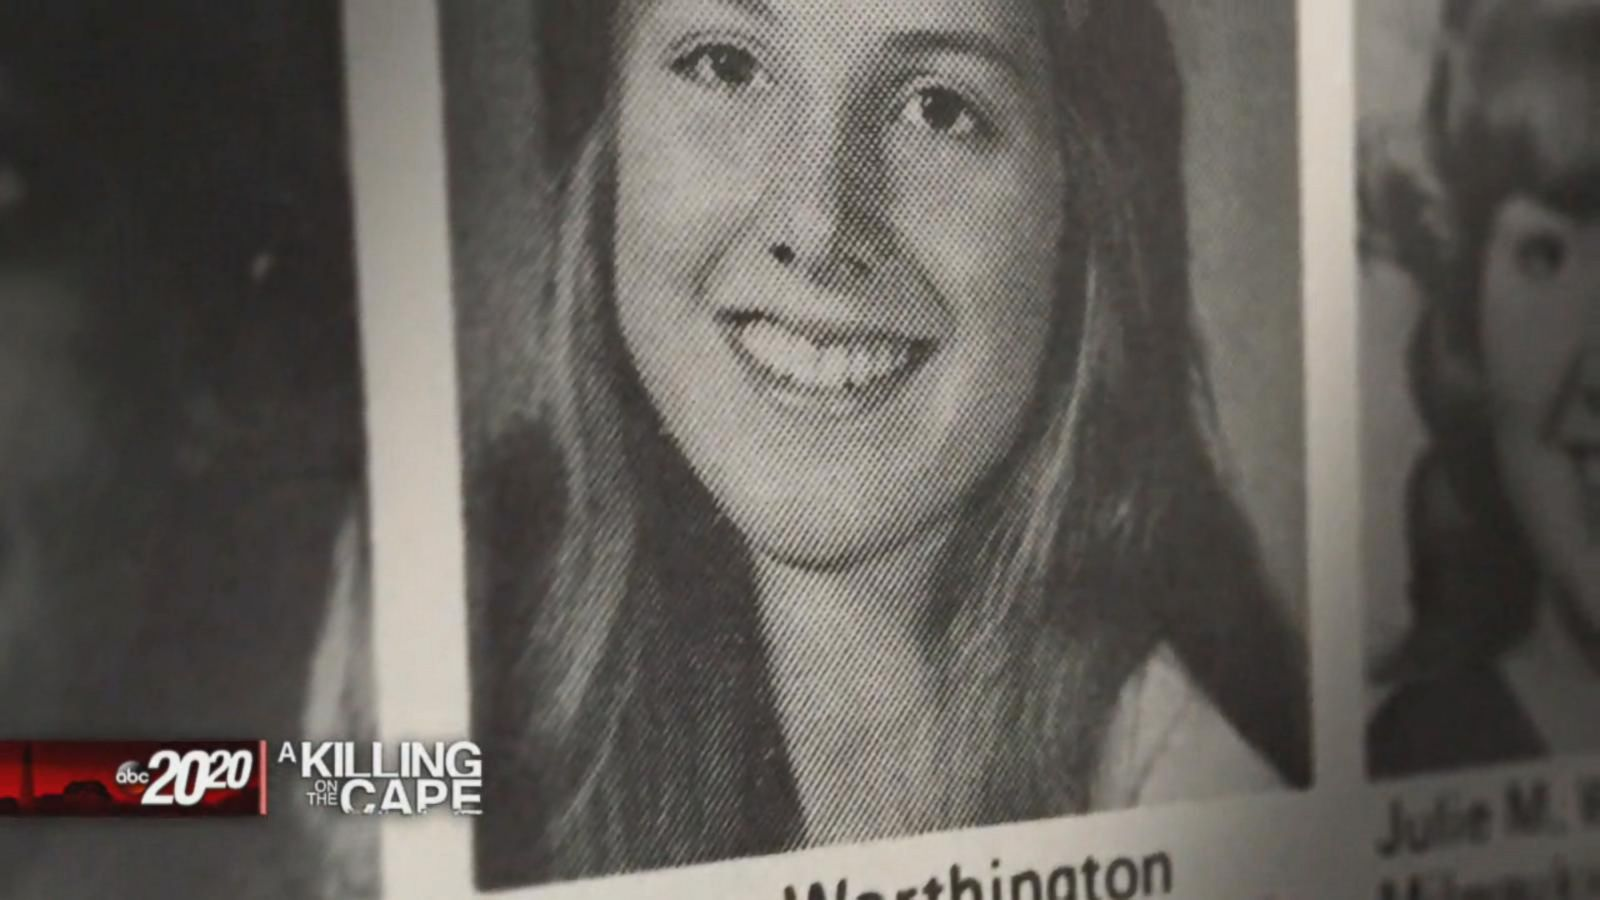 A Killing on the Cape': The Murder of Christa Worthington -- Episode